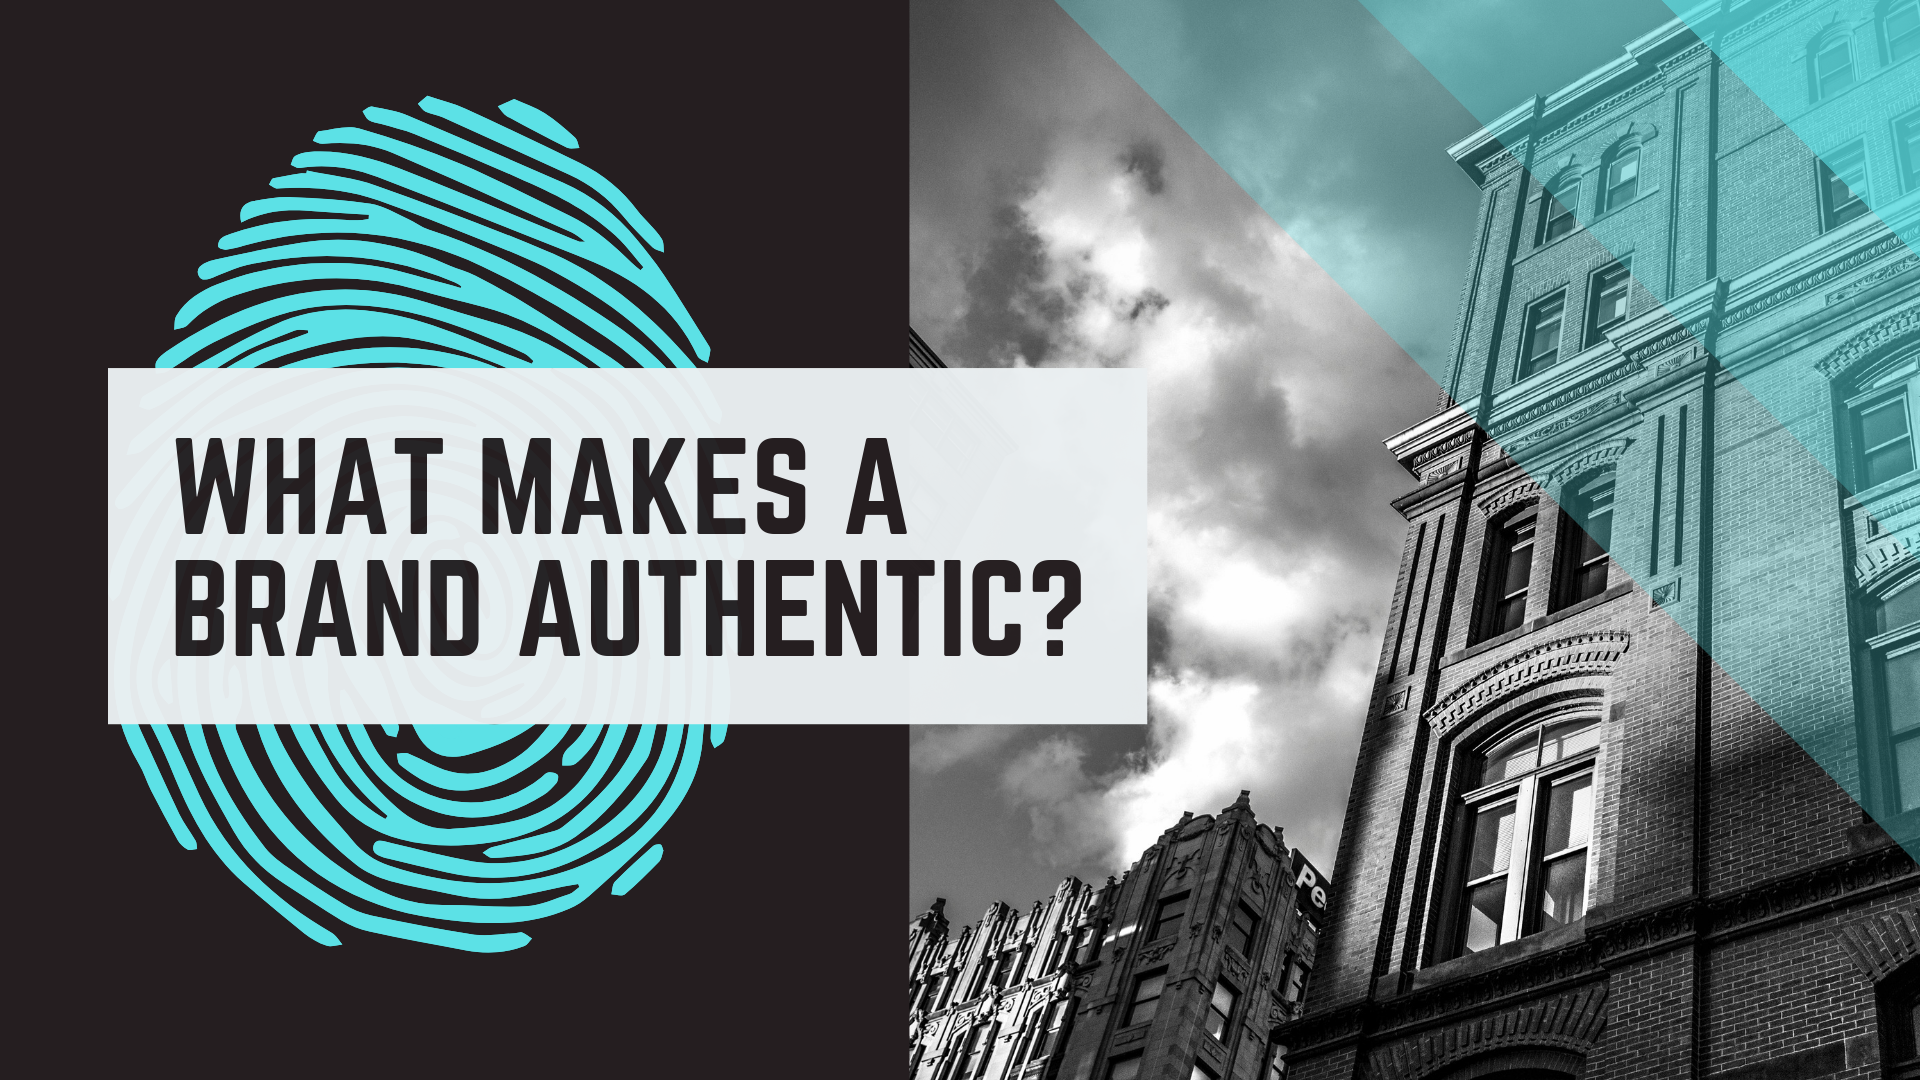 What Makes a Brand Authentic?